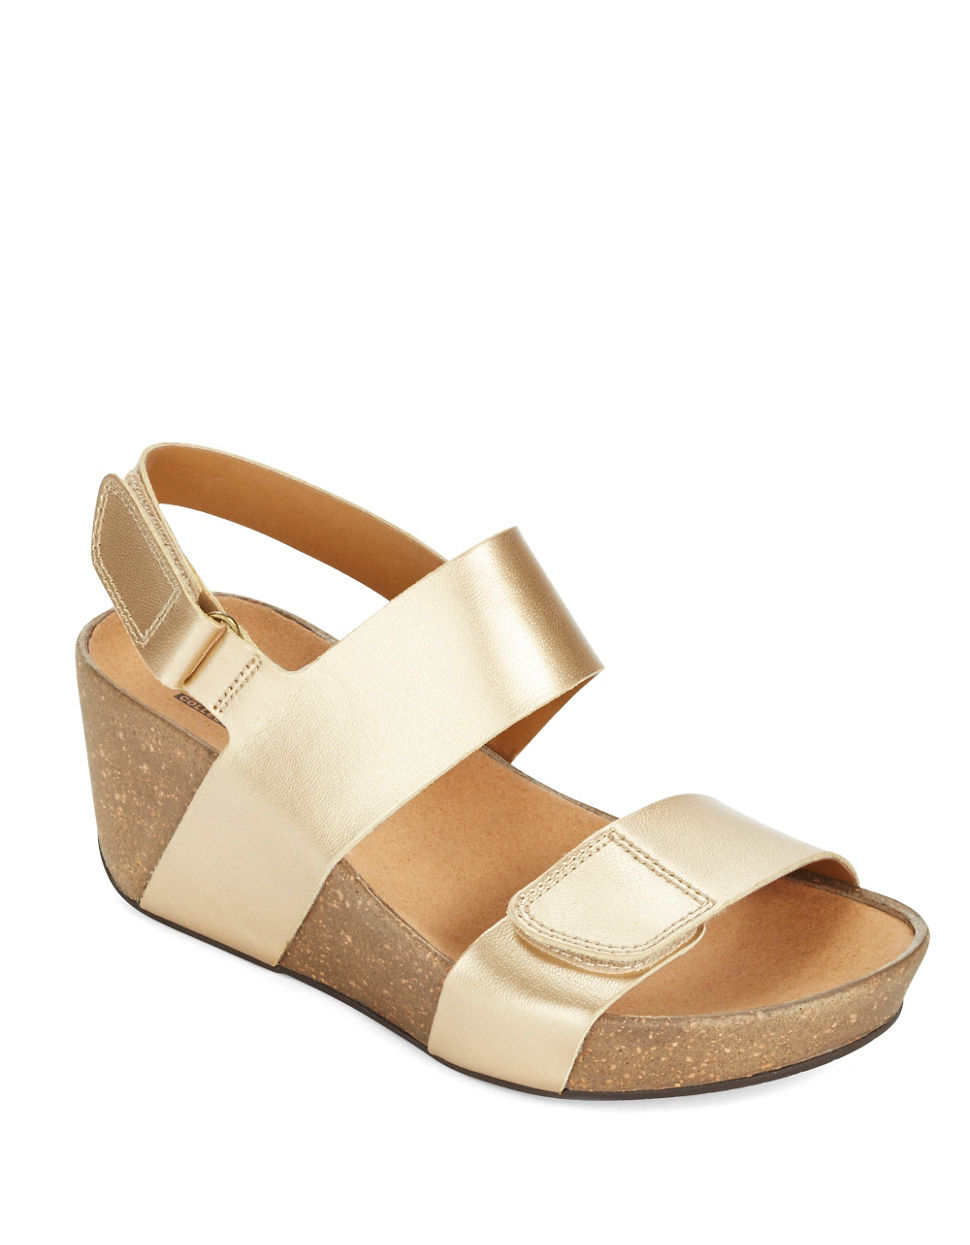 75e26ad7d2ce Clarks Auriel Fin Leather Wedge Sandals in Metallic - Lyst